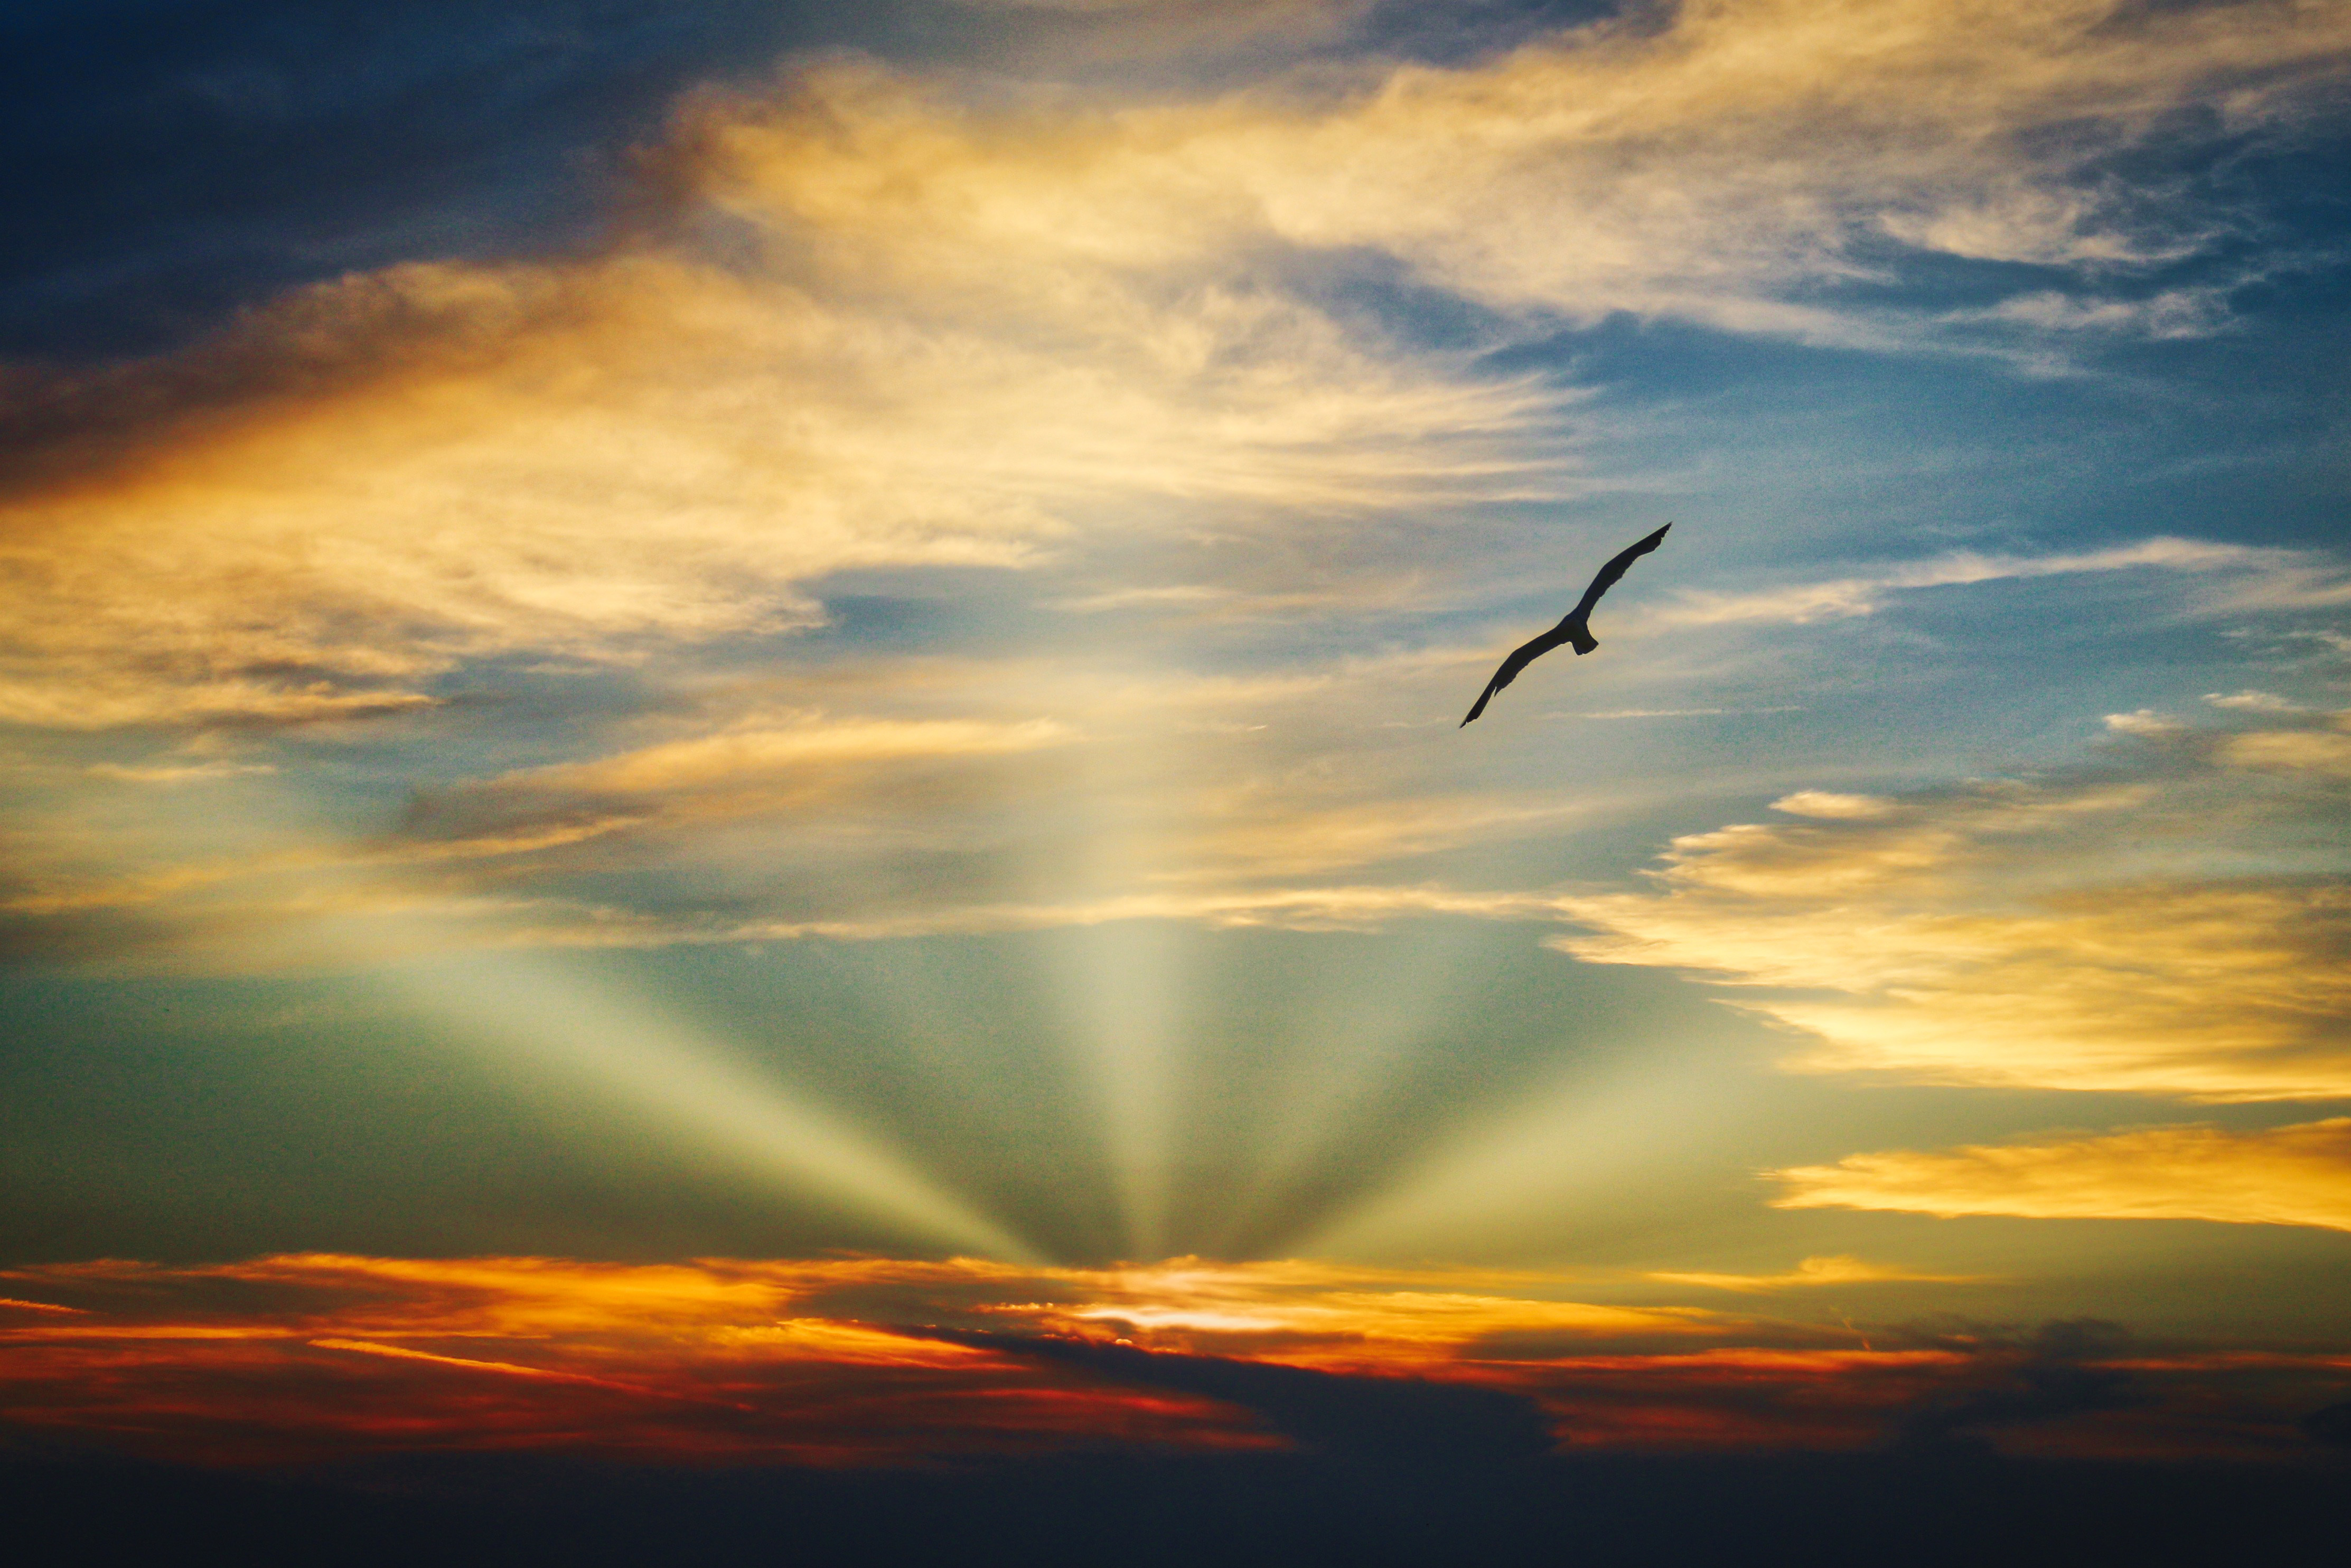 bird flying in the sky with evening light image free stock photo